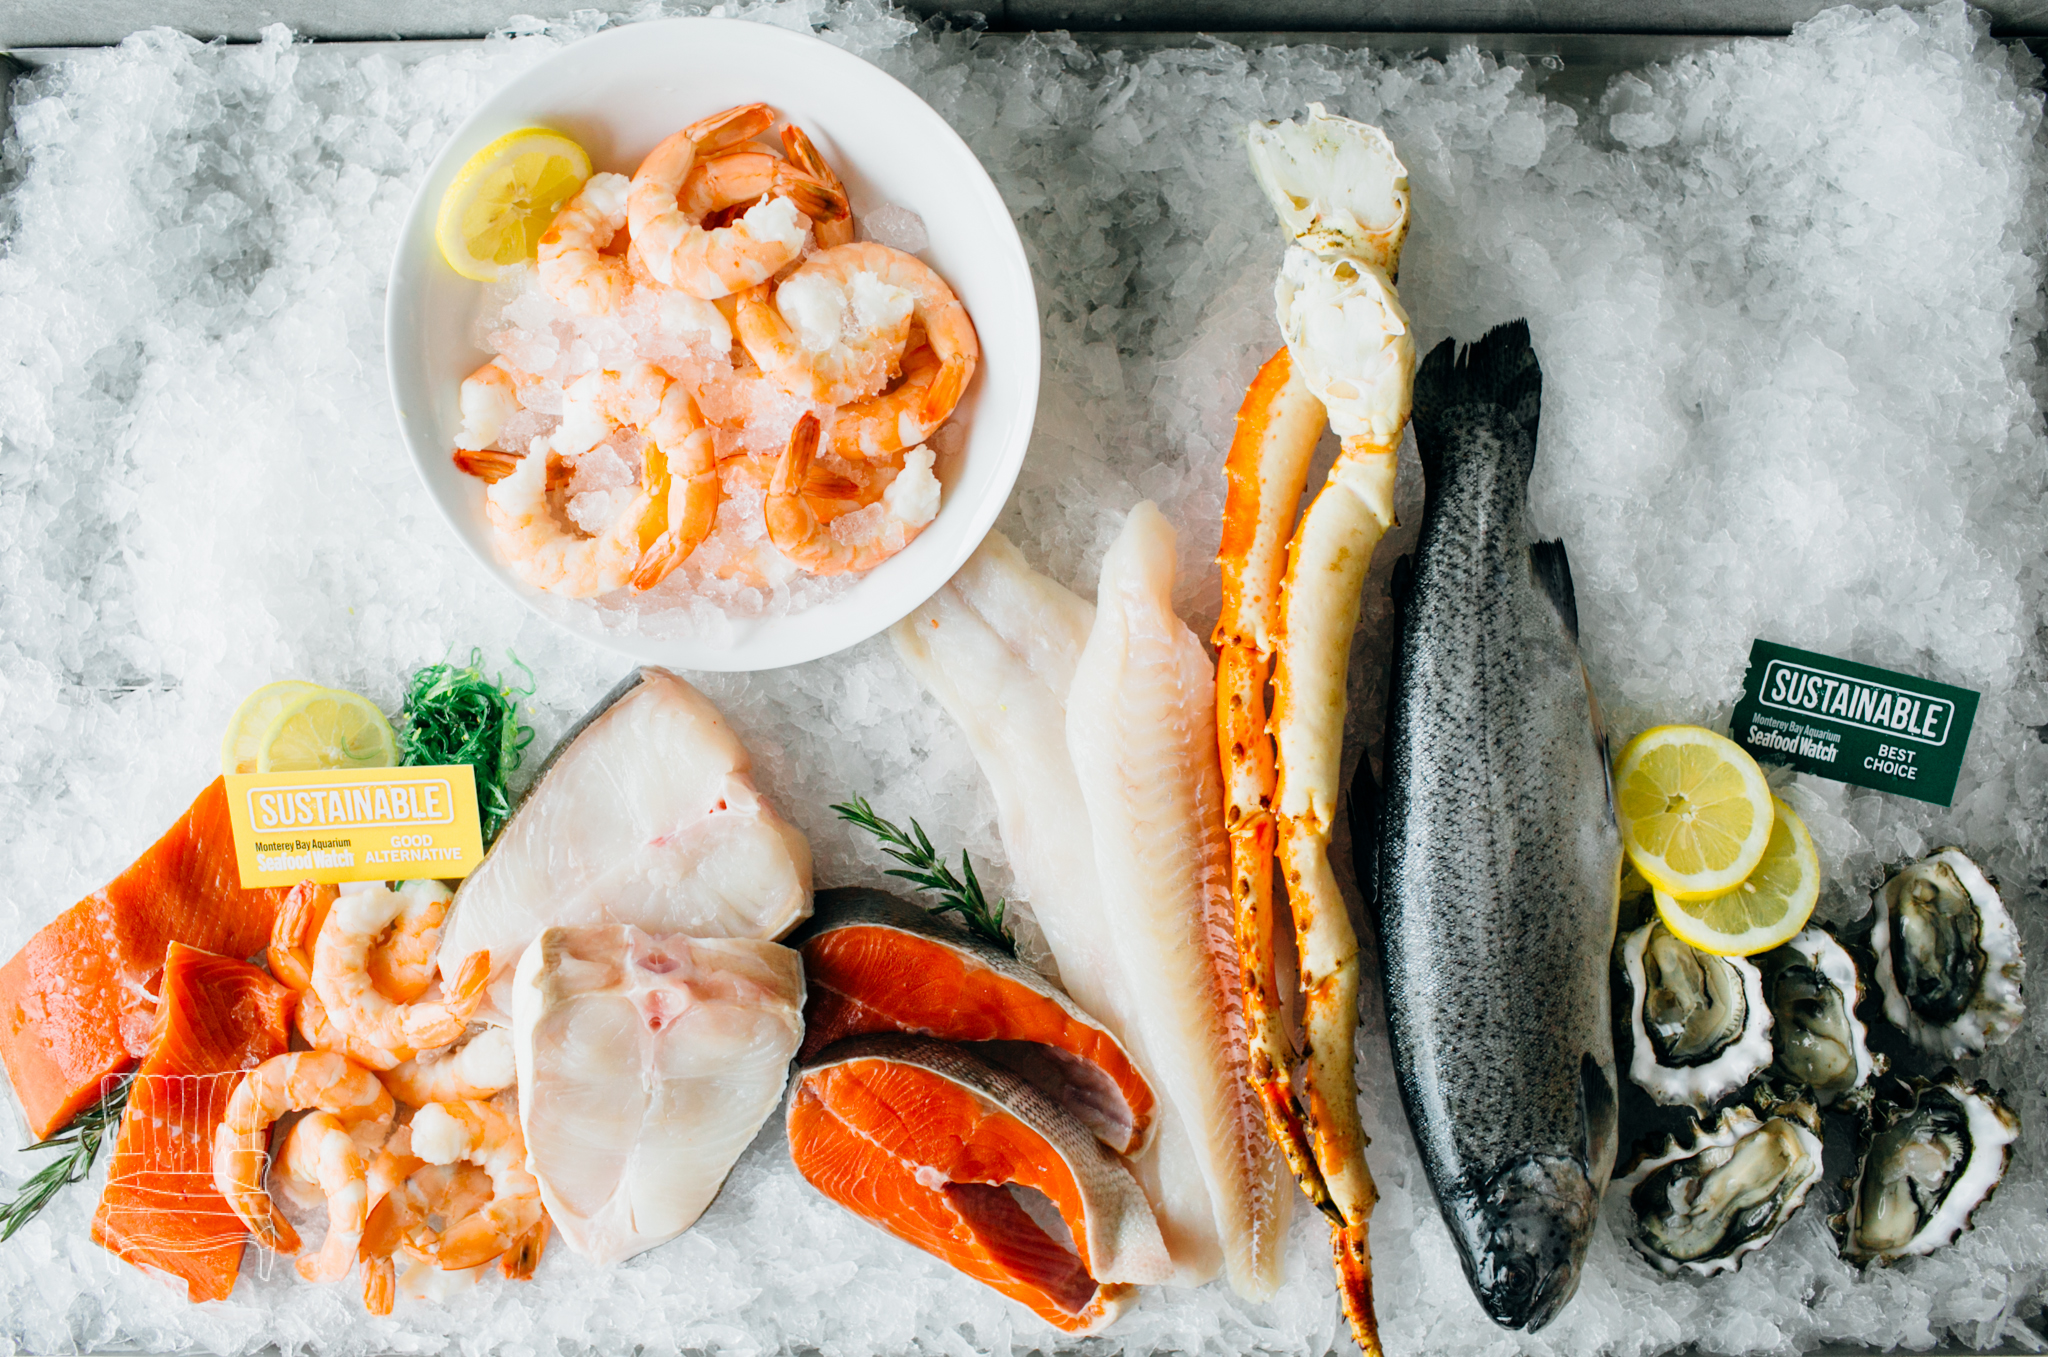 bellingham-marketing-photographer-photo-seafood-haggen-31.jpg